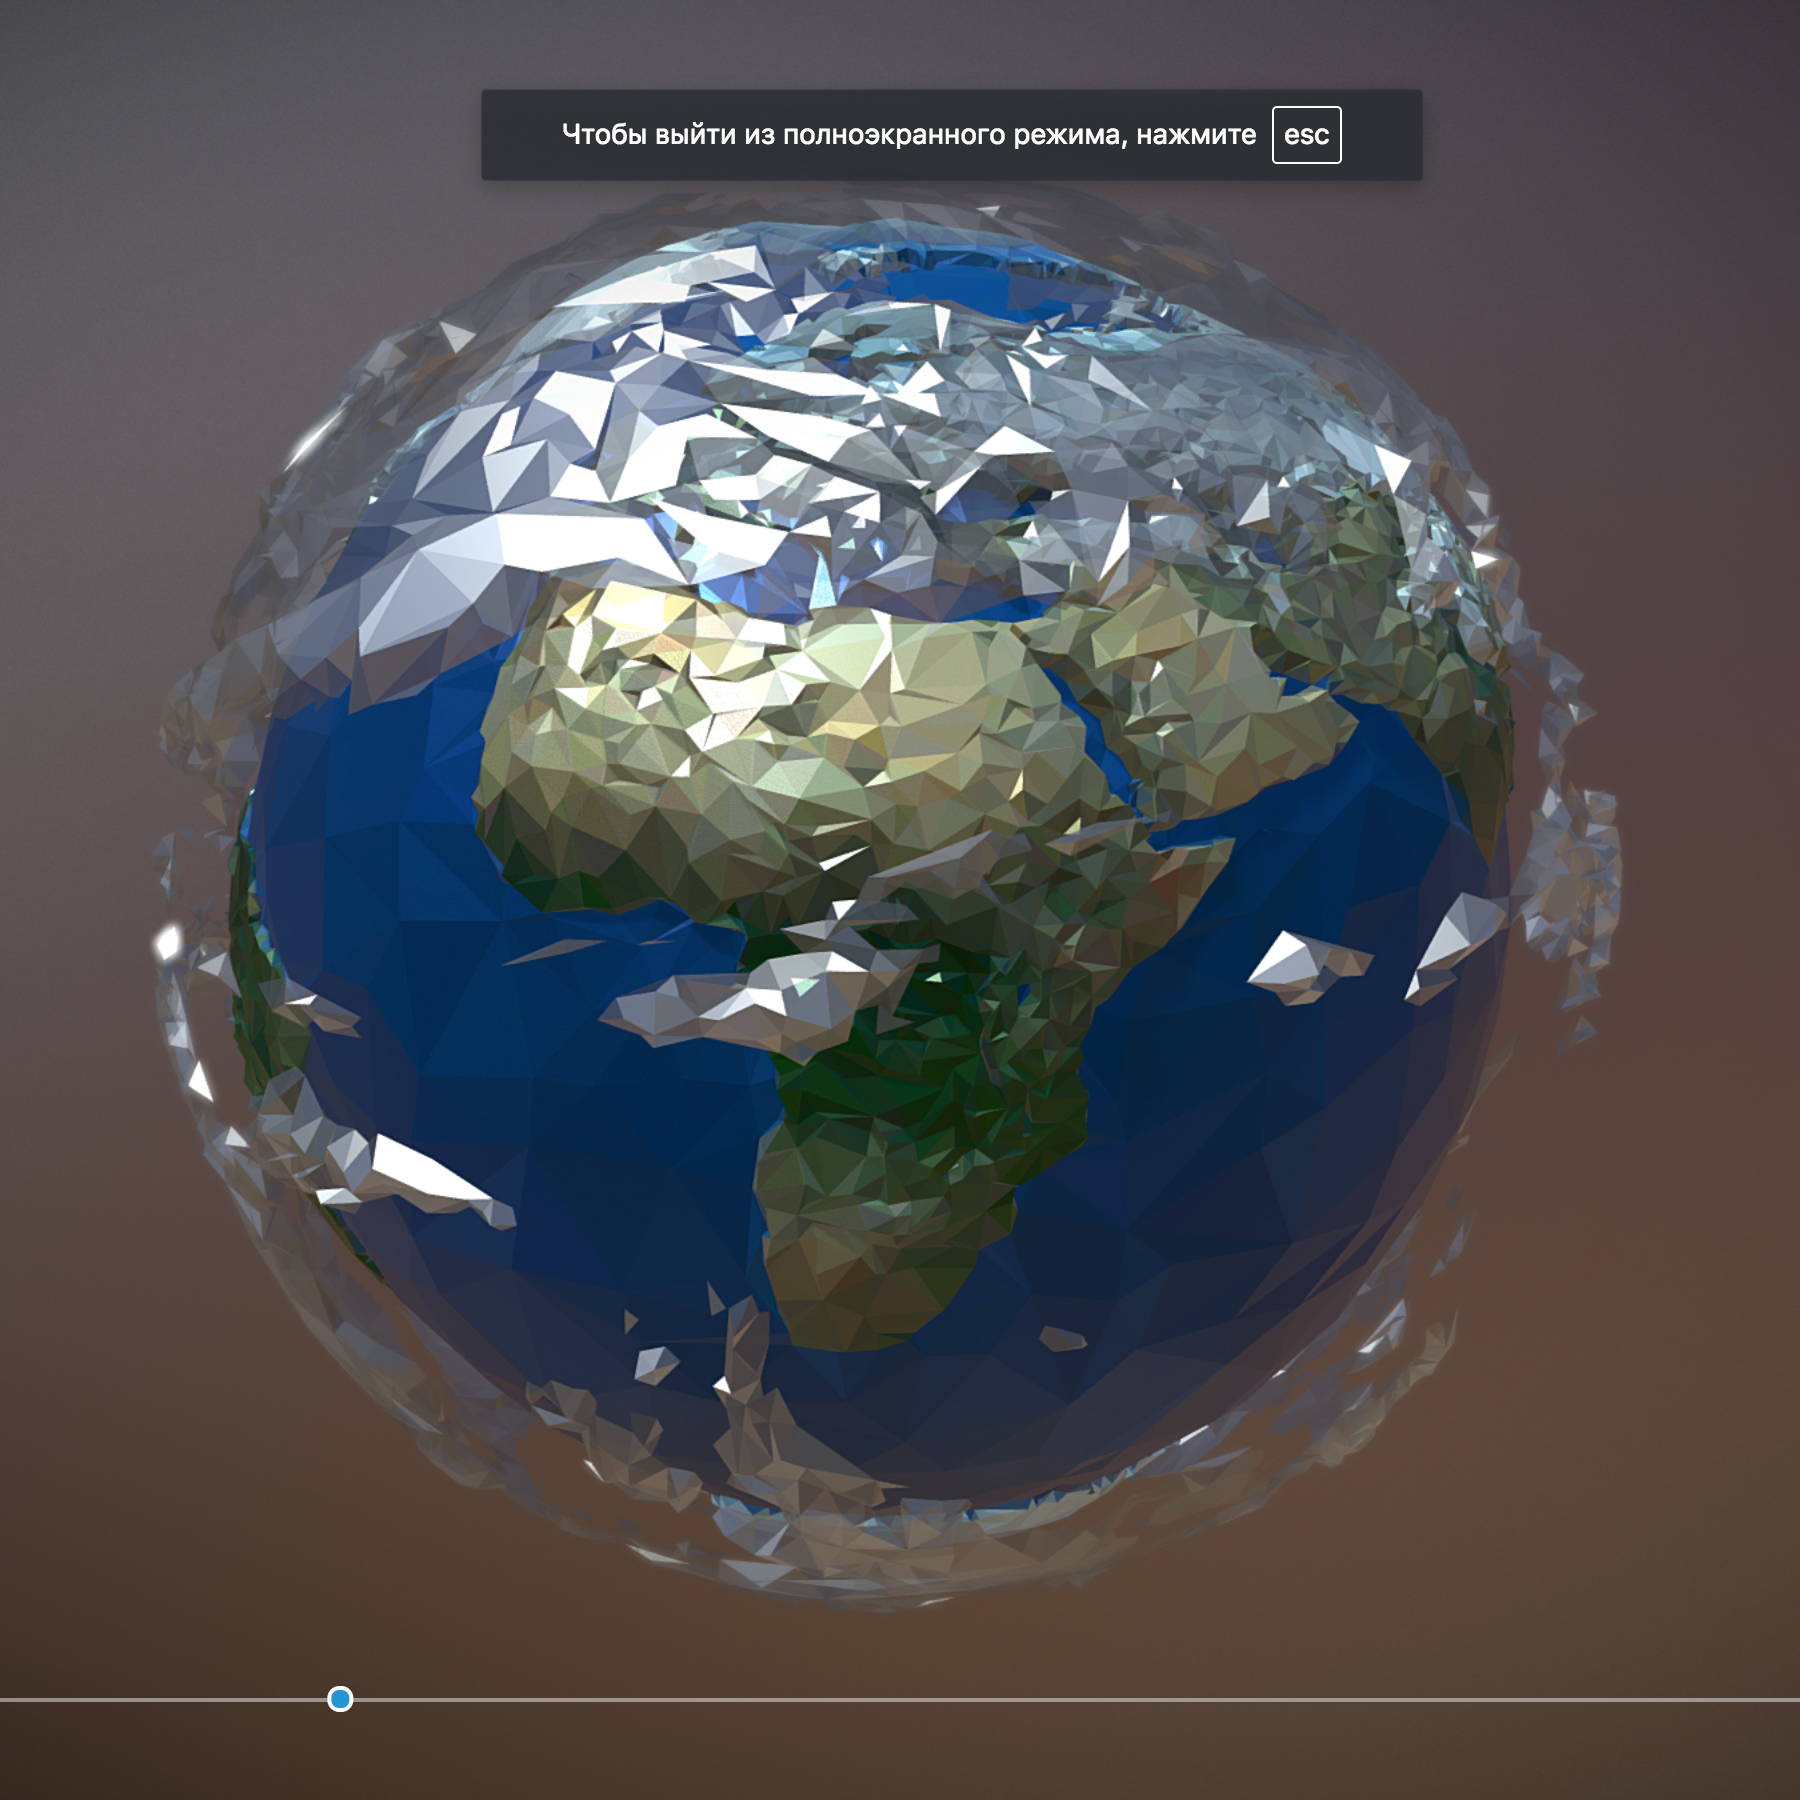 animated planet earth 3d model 3ds max fbx ma mb tga targa icb vda vst pix obj 271048